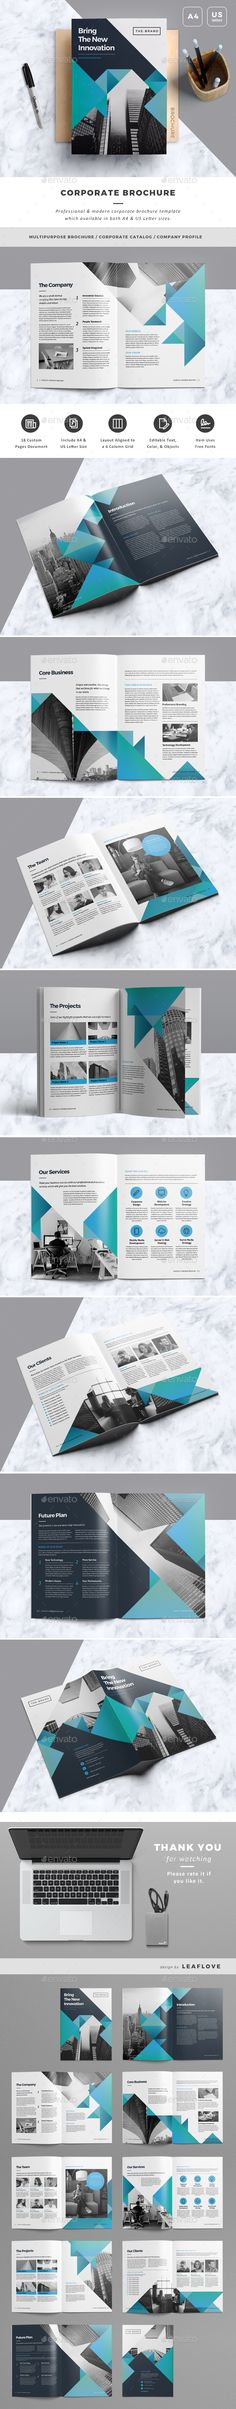 Brochure — InDesign INDD #company #template • Download ➝ https://graphicriver.net/item/brochure/19684800?ref=pxcr